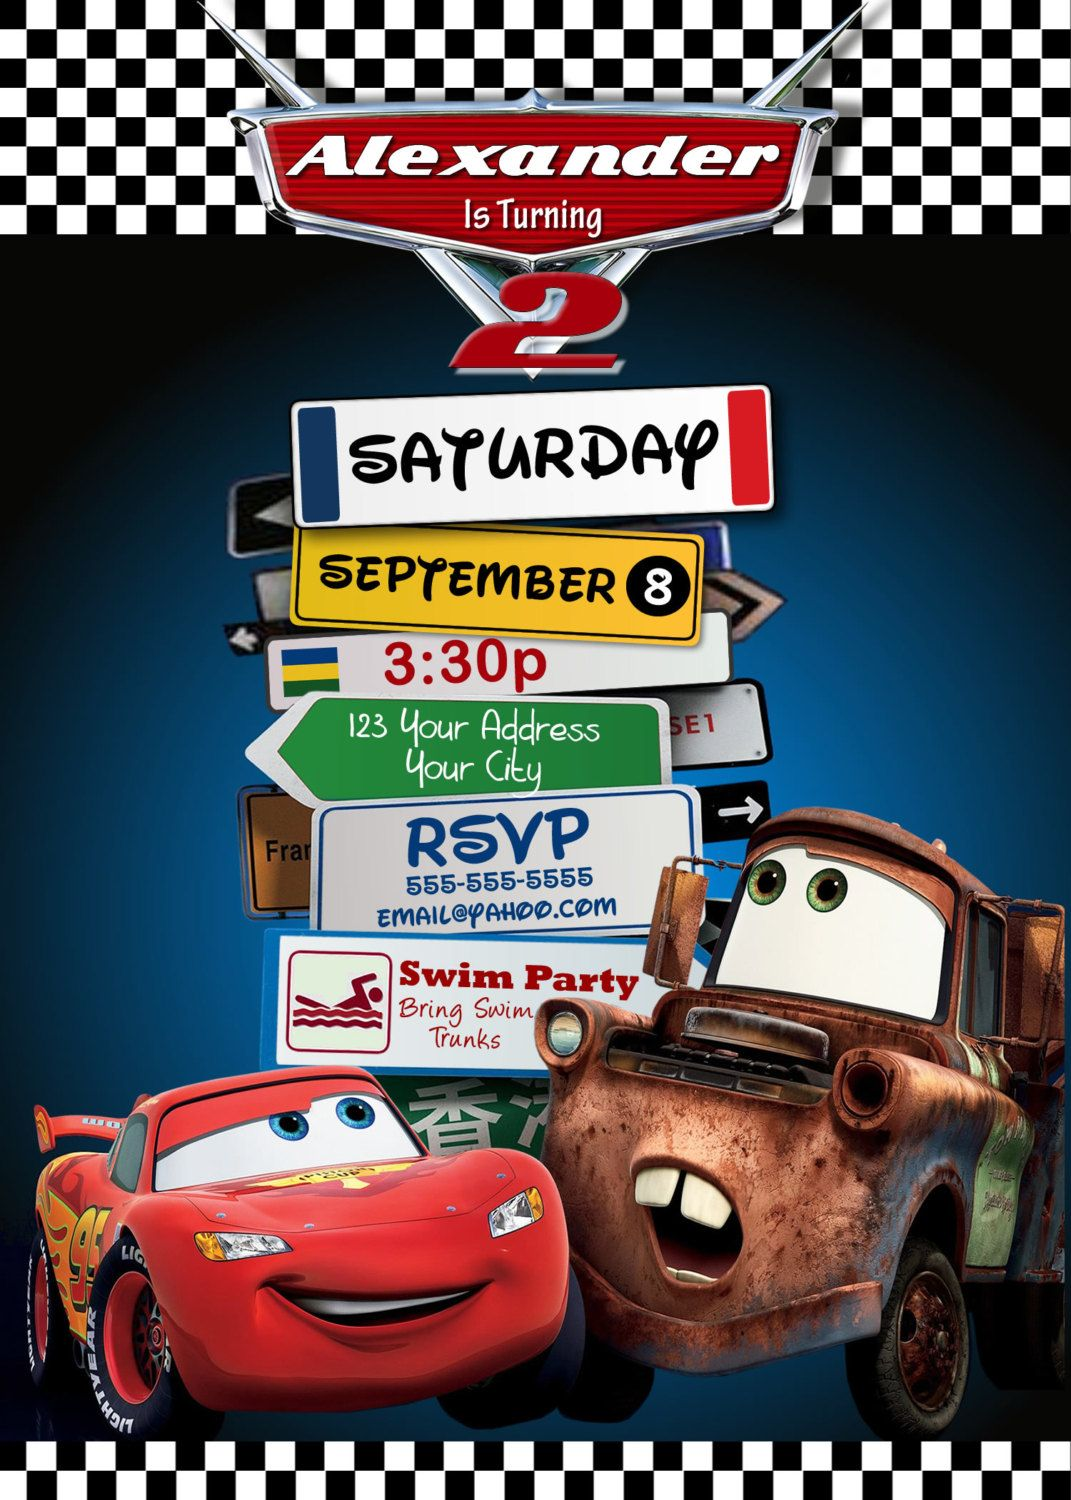 Cars Invitation Card Template Free: Disney Pixar Cars Lightning Mcqueen Mater Birthday Party